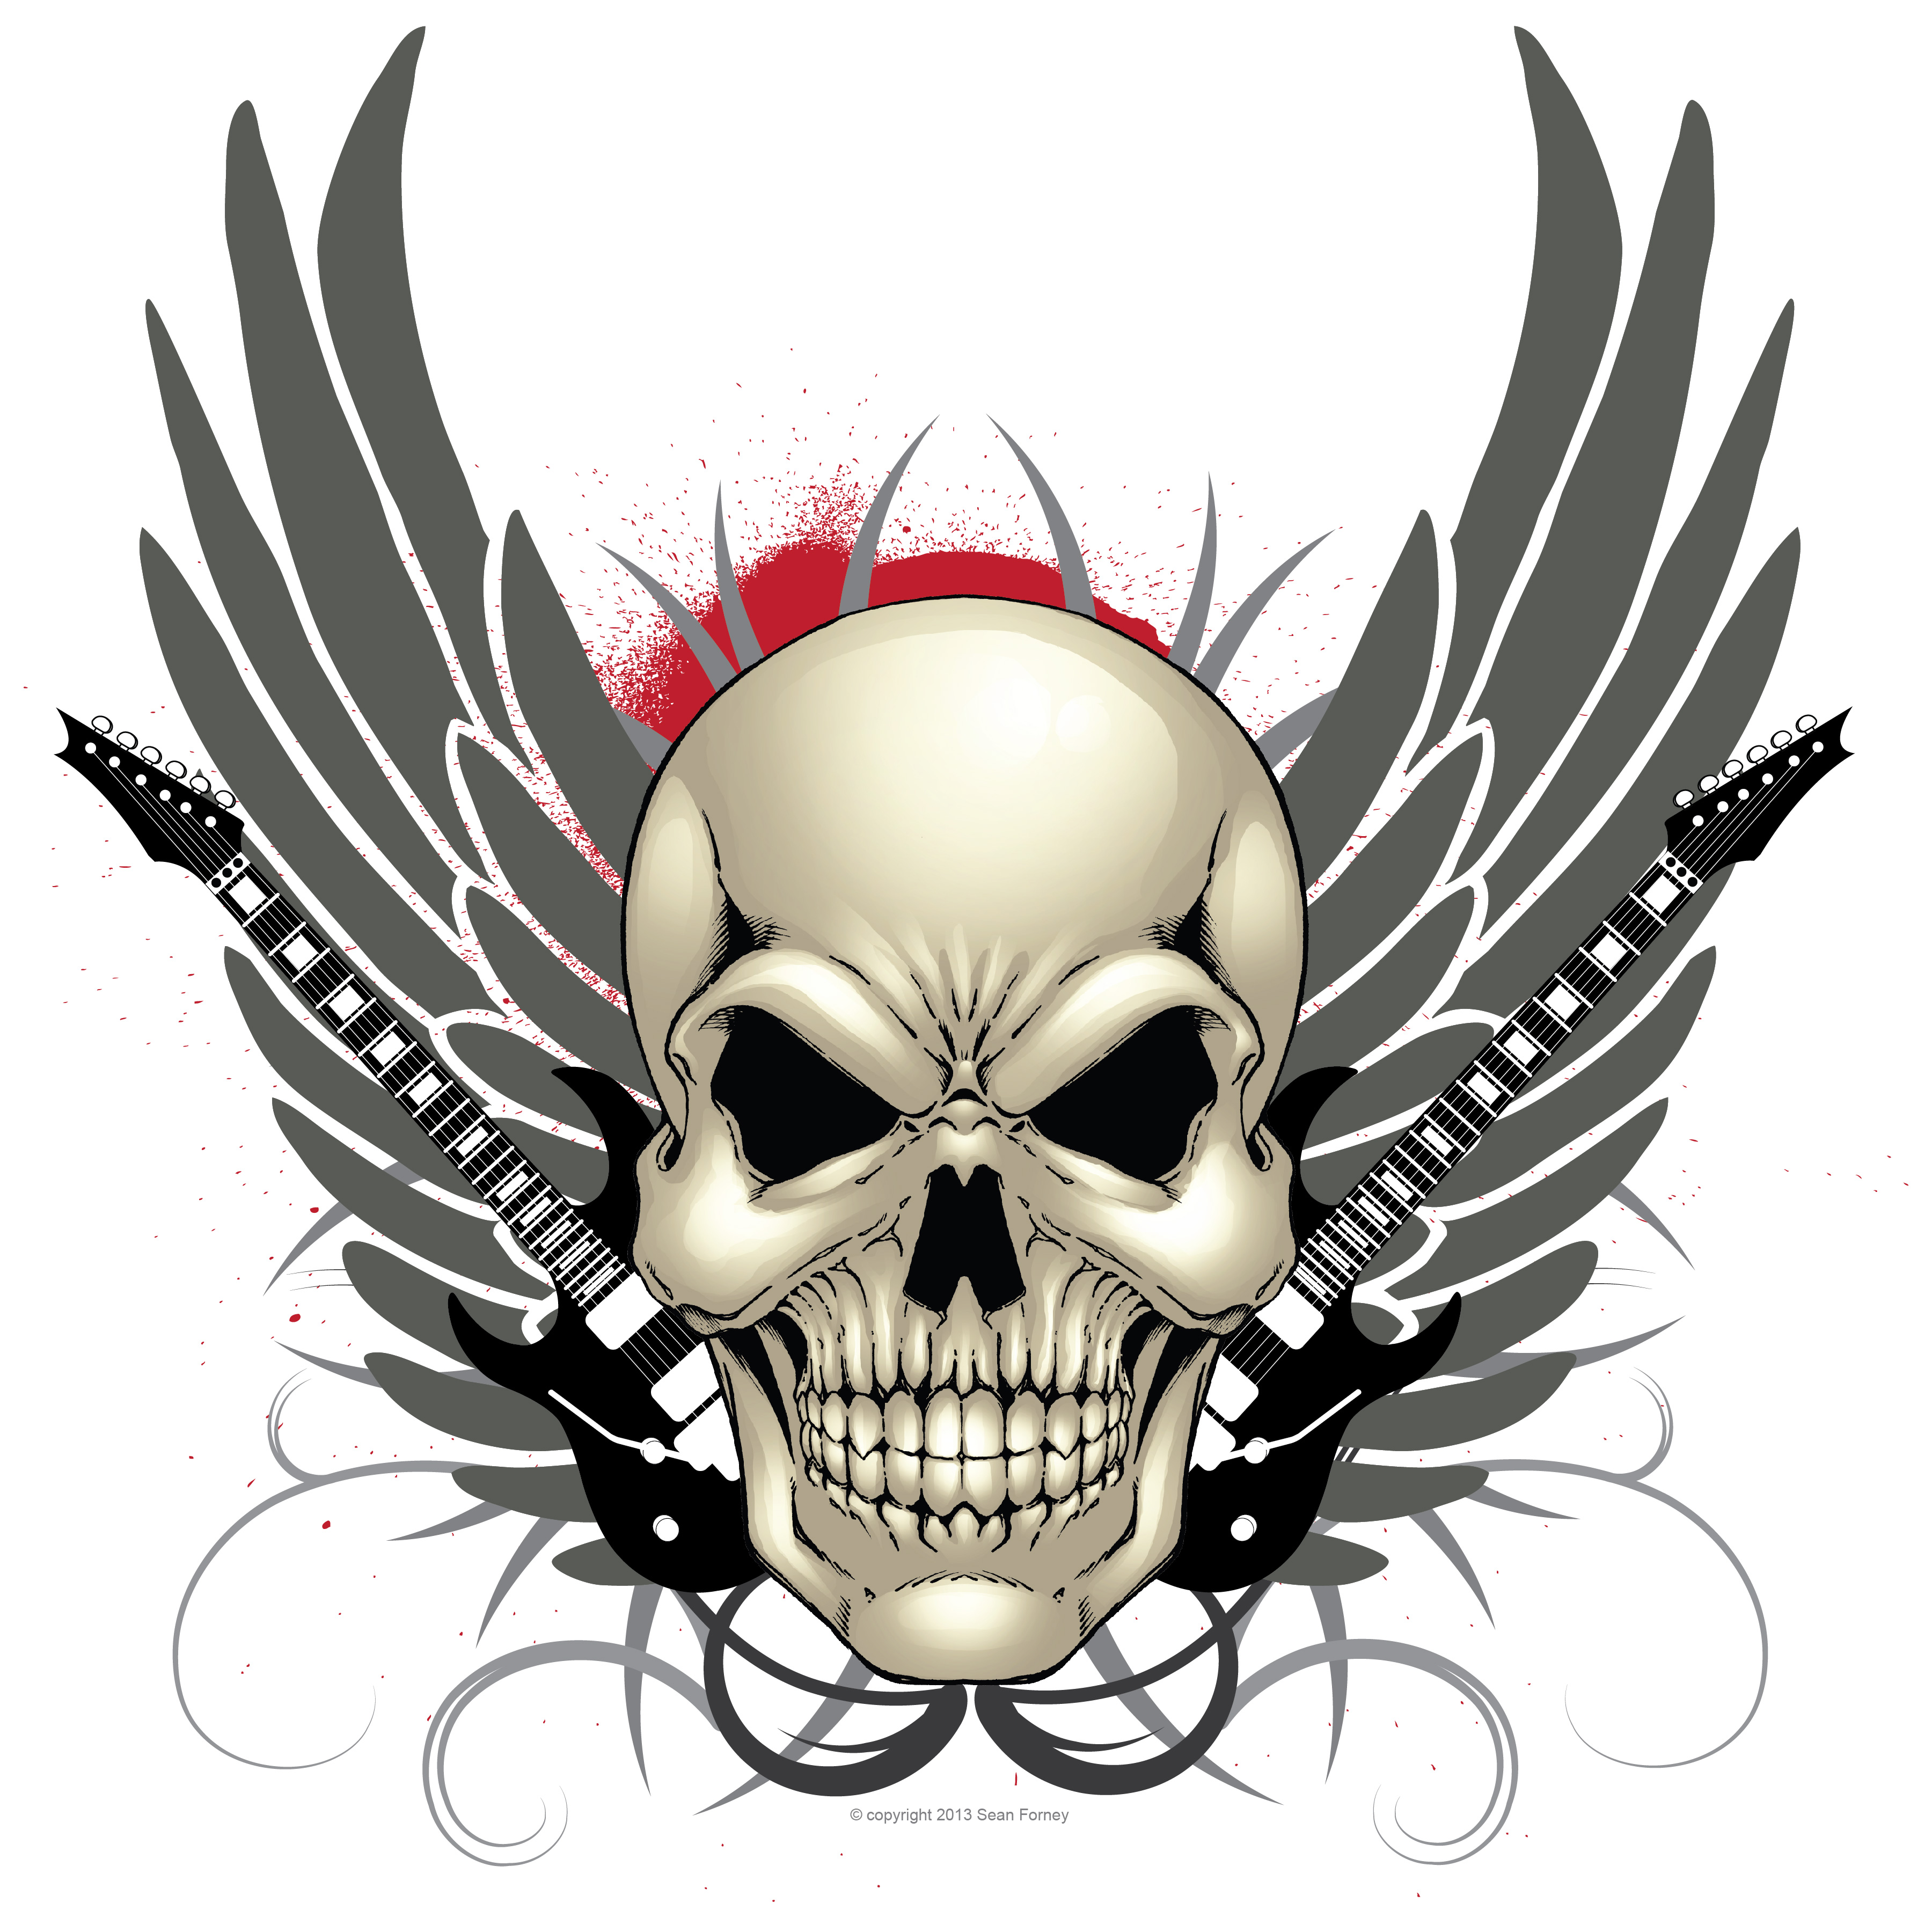 Forney clipart clipart freeuse stock Skull, guitar, and wings design print ? Sean Forney ? Online Store ... clipart freeuse stock